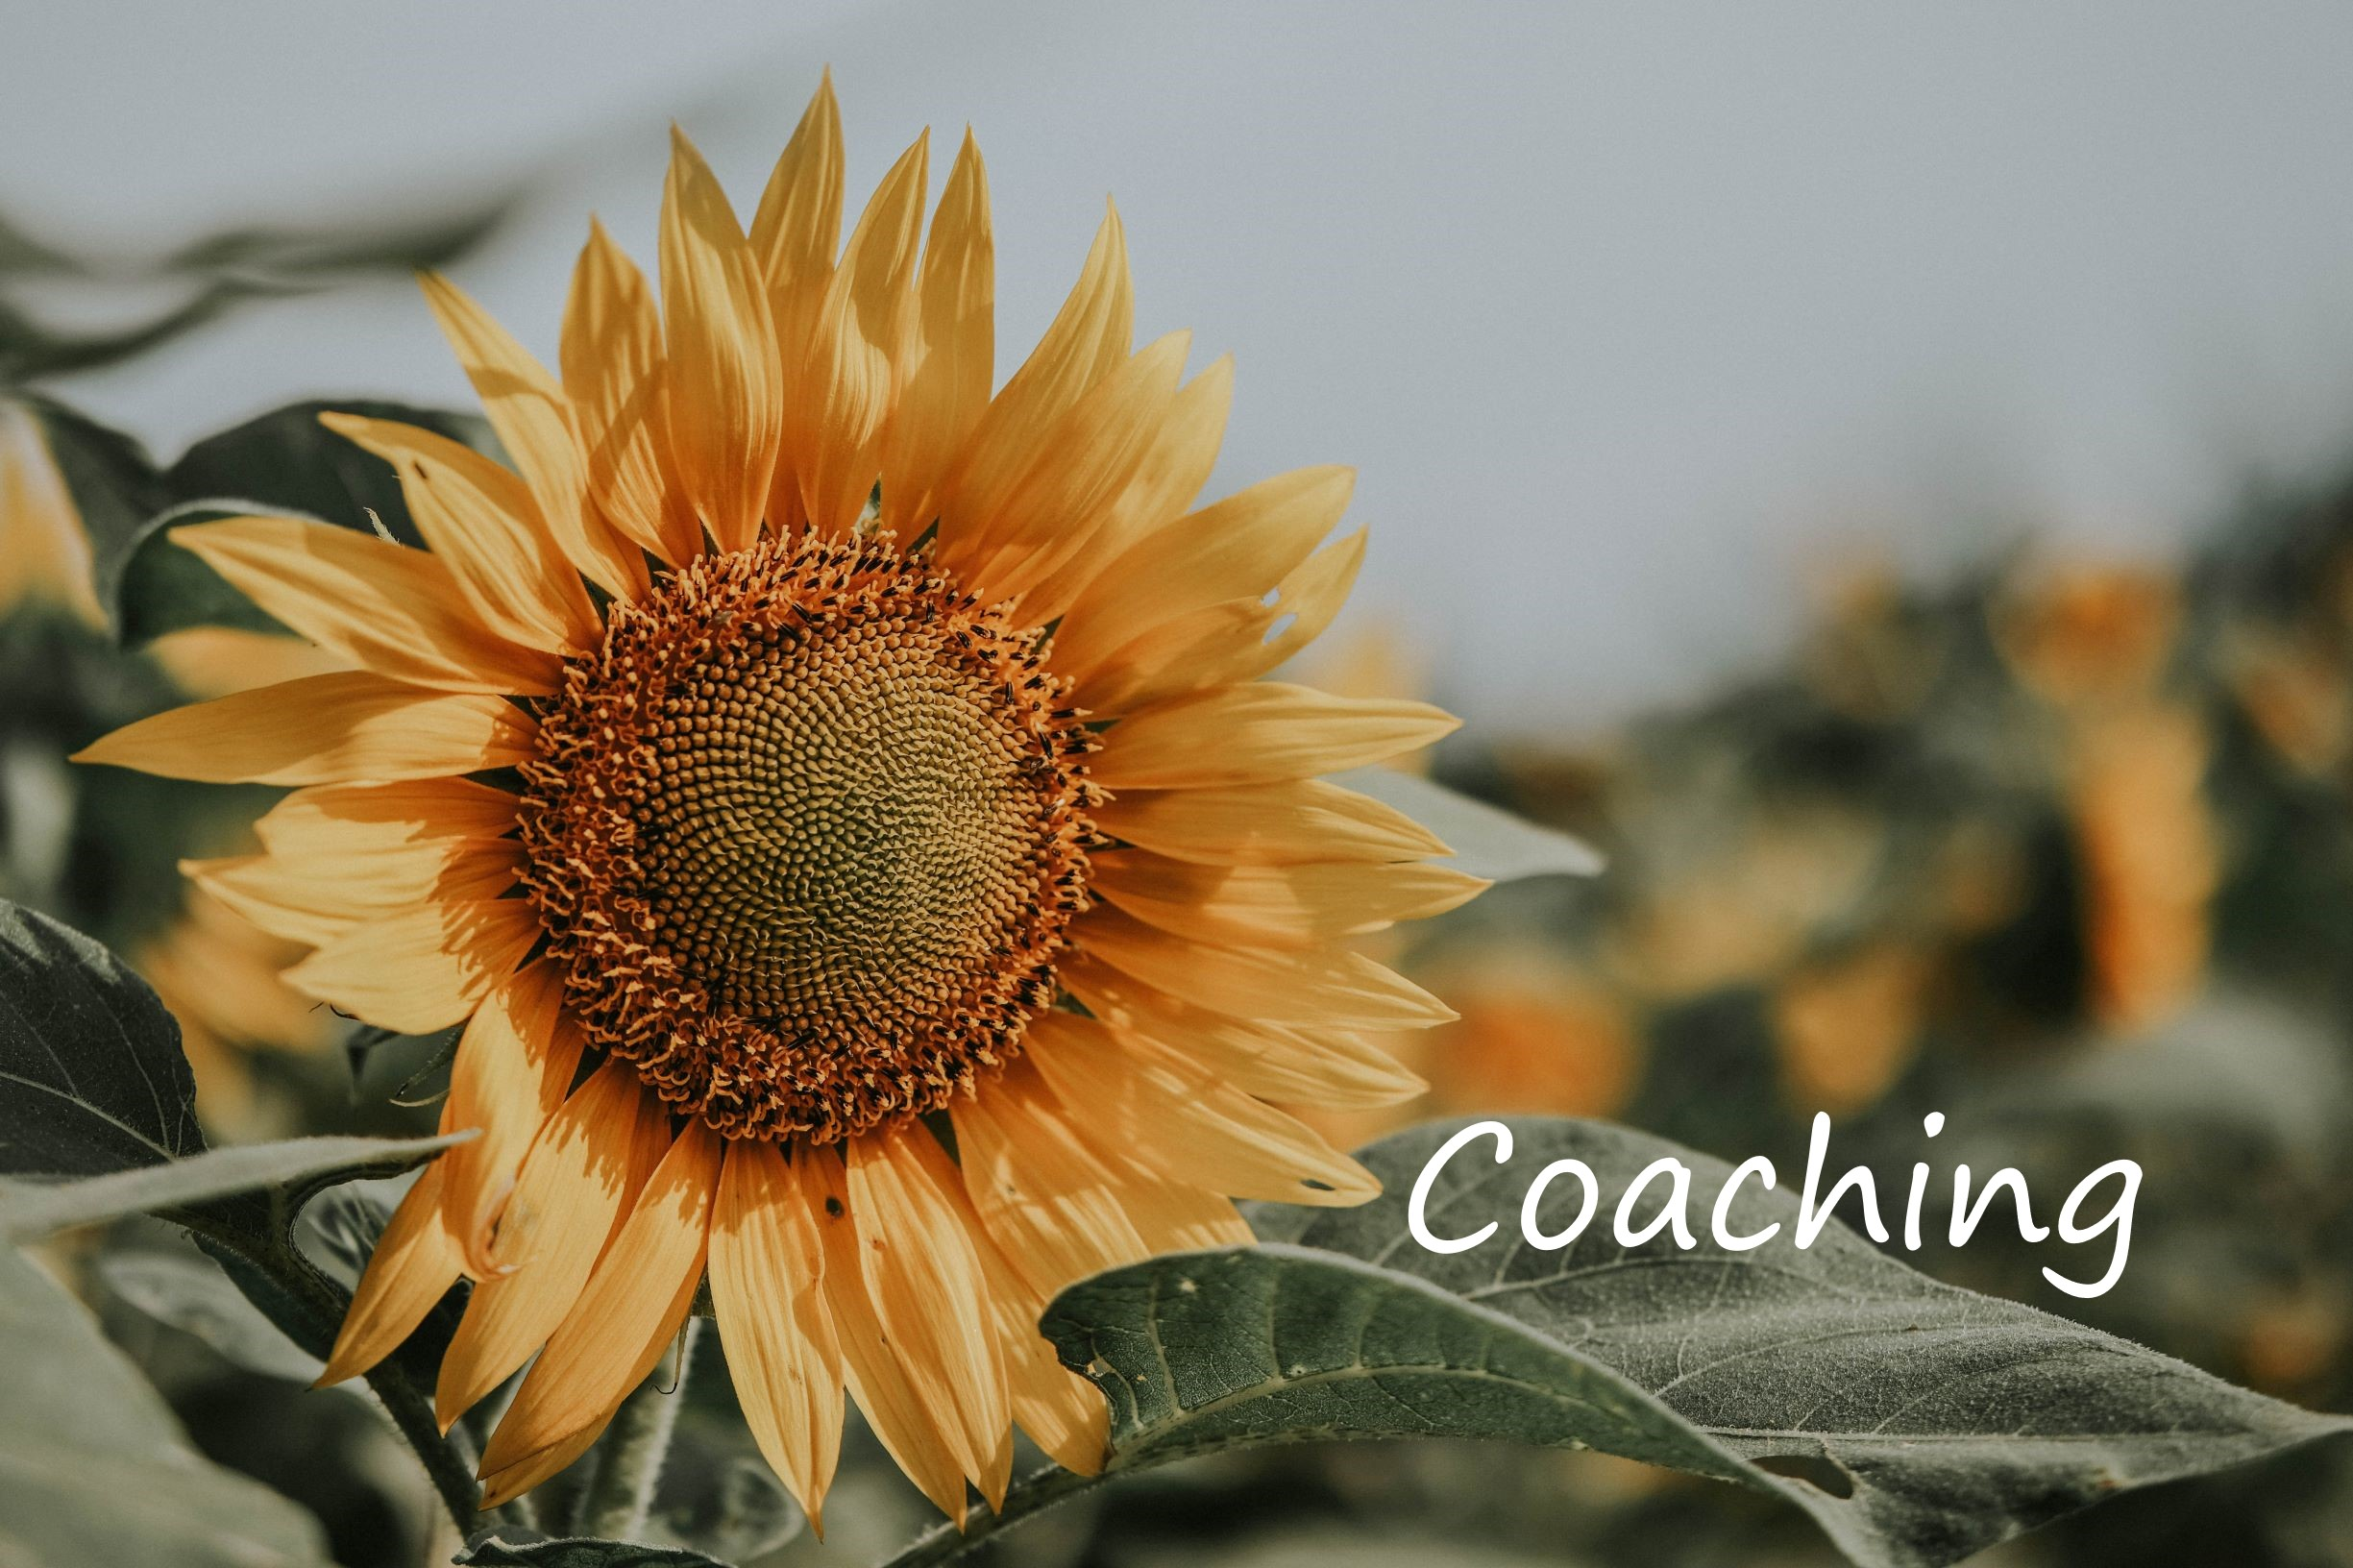 Canva - Close-Up Photo of Sunflower2.jpg